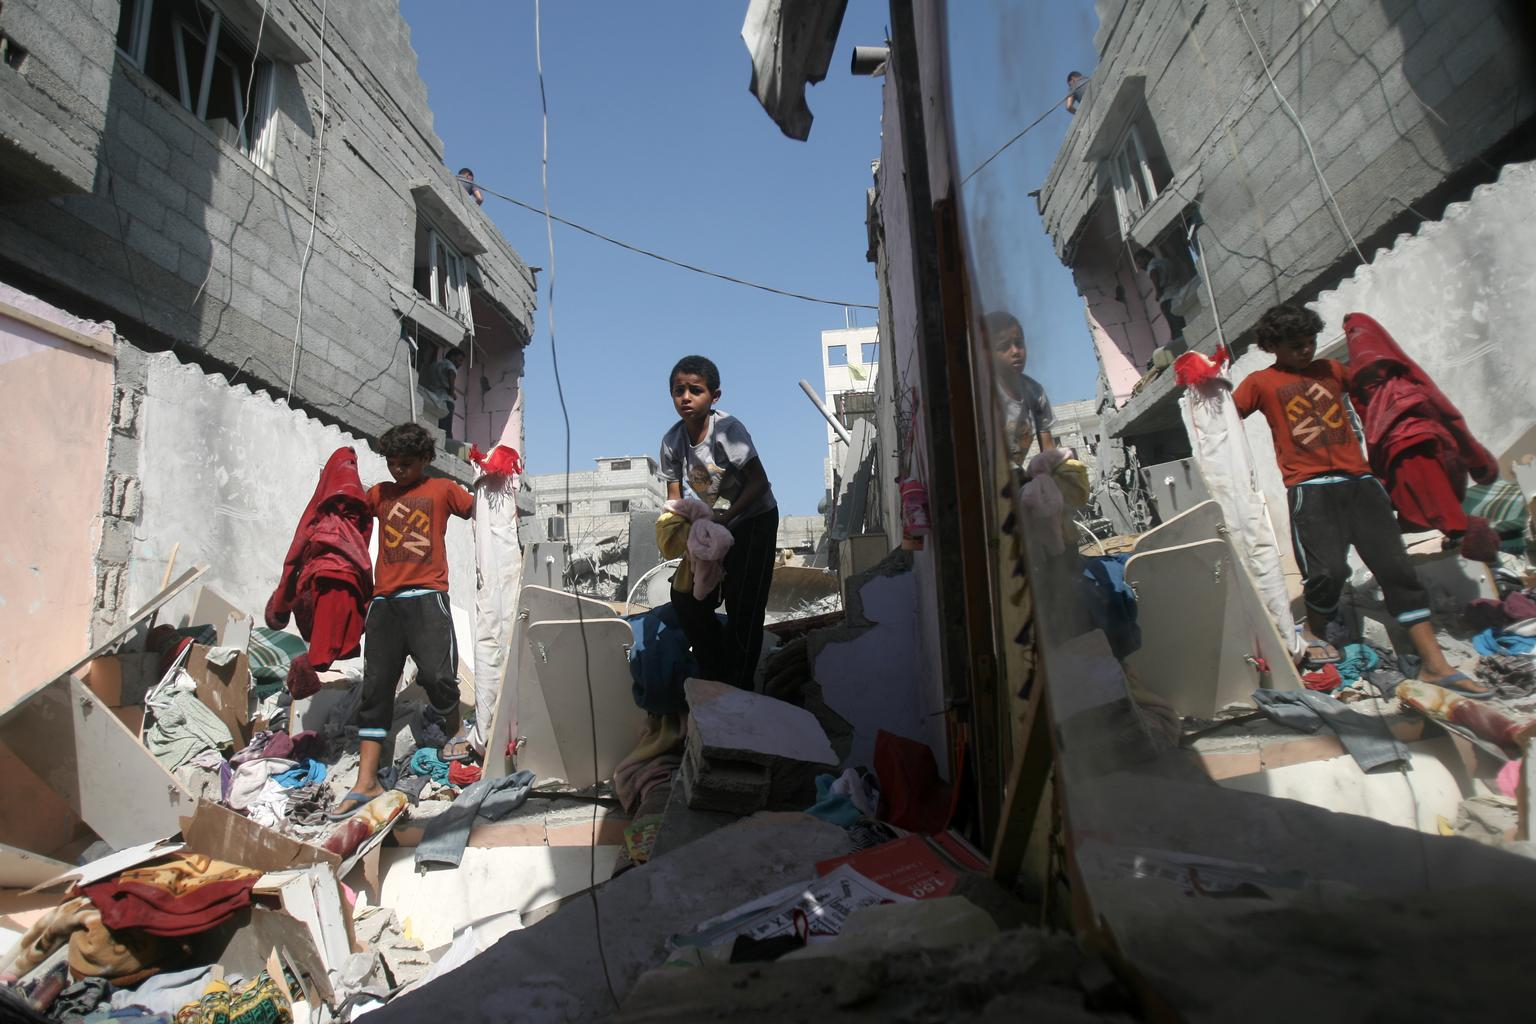 On 10 July 2014, boys carry clothing salvaged from the rubble of the Al Haj home, which was destroyed during an early morning Israeli air strike in the Khan Yunis refugee camp in the southern Gaza Strip. © UNICEF/NYHQ2014-0905/El Baba